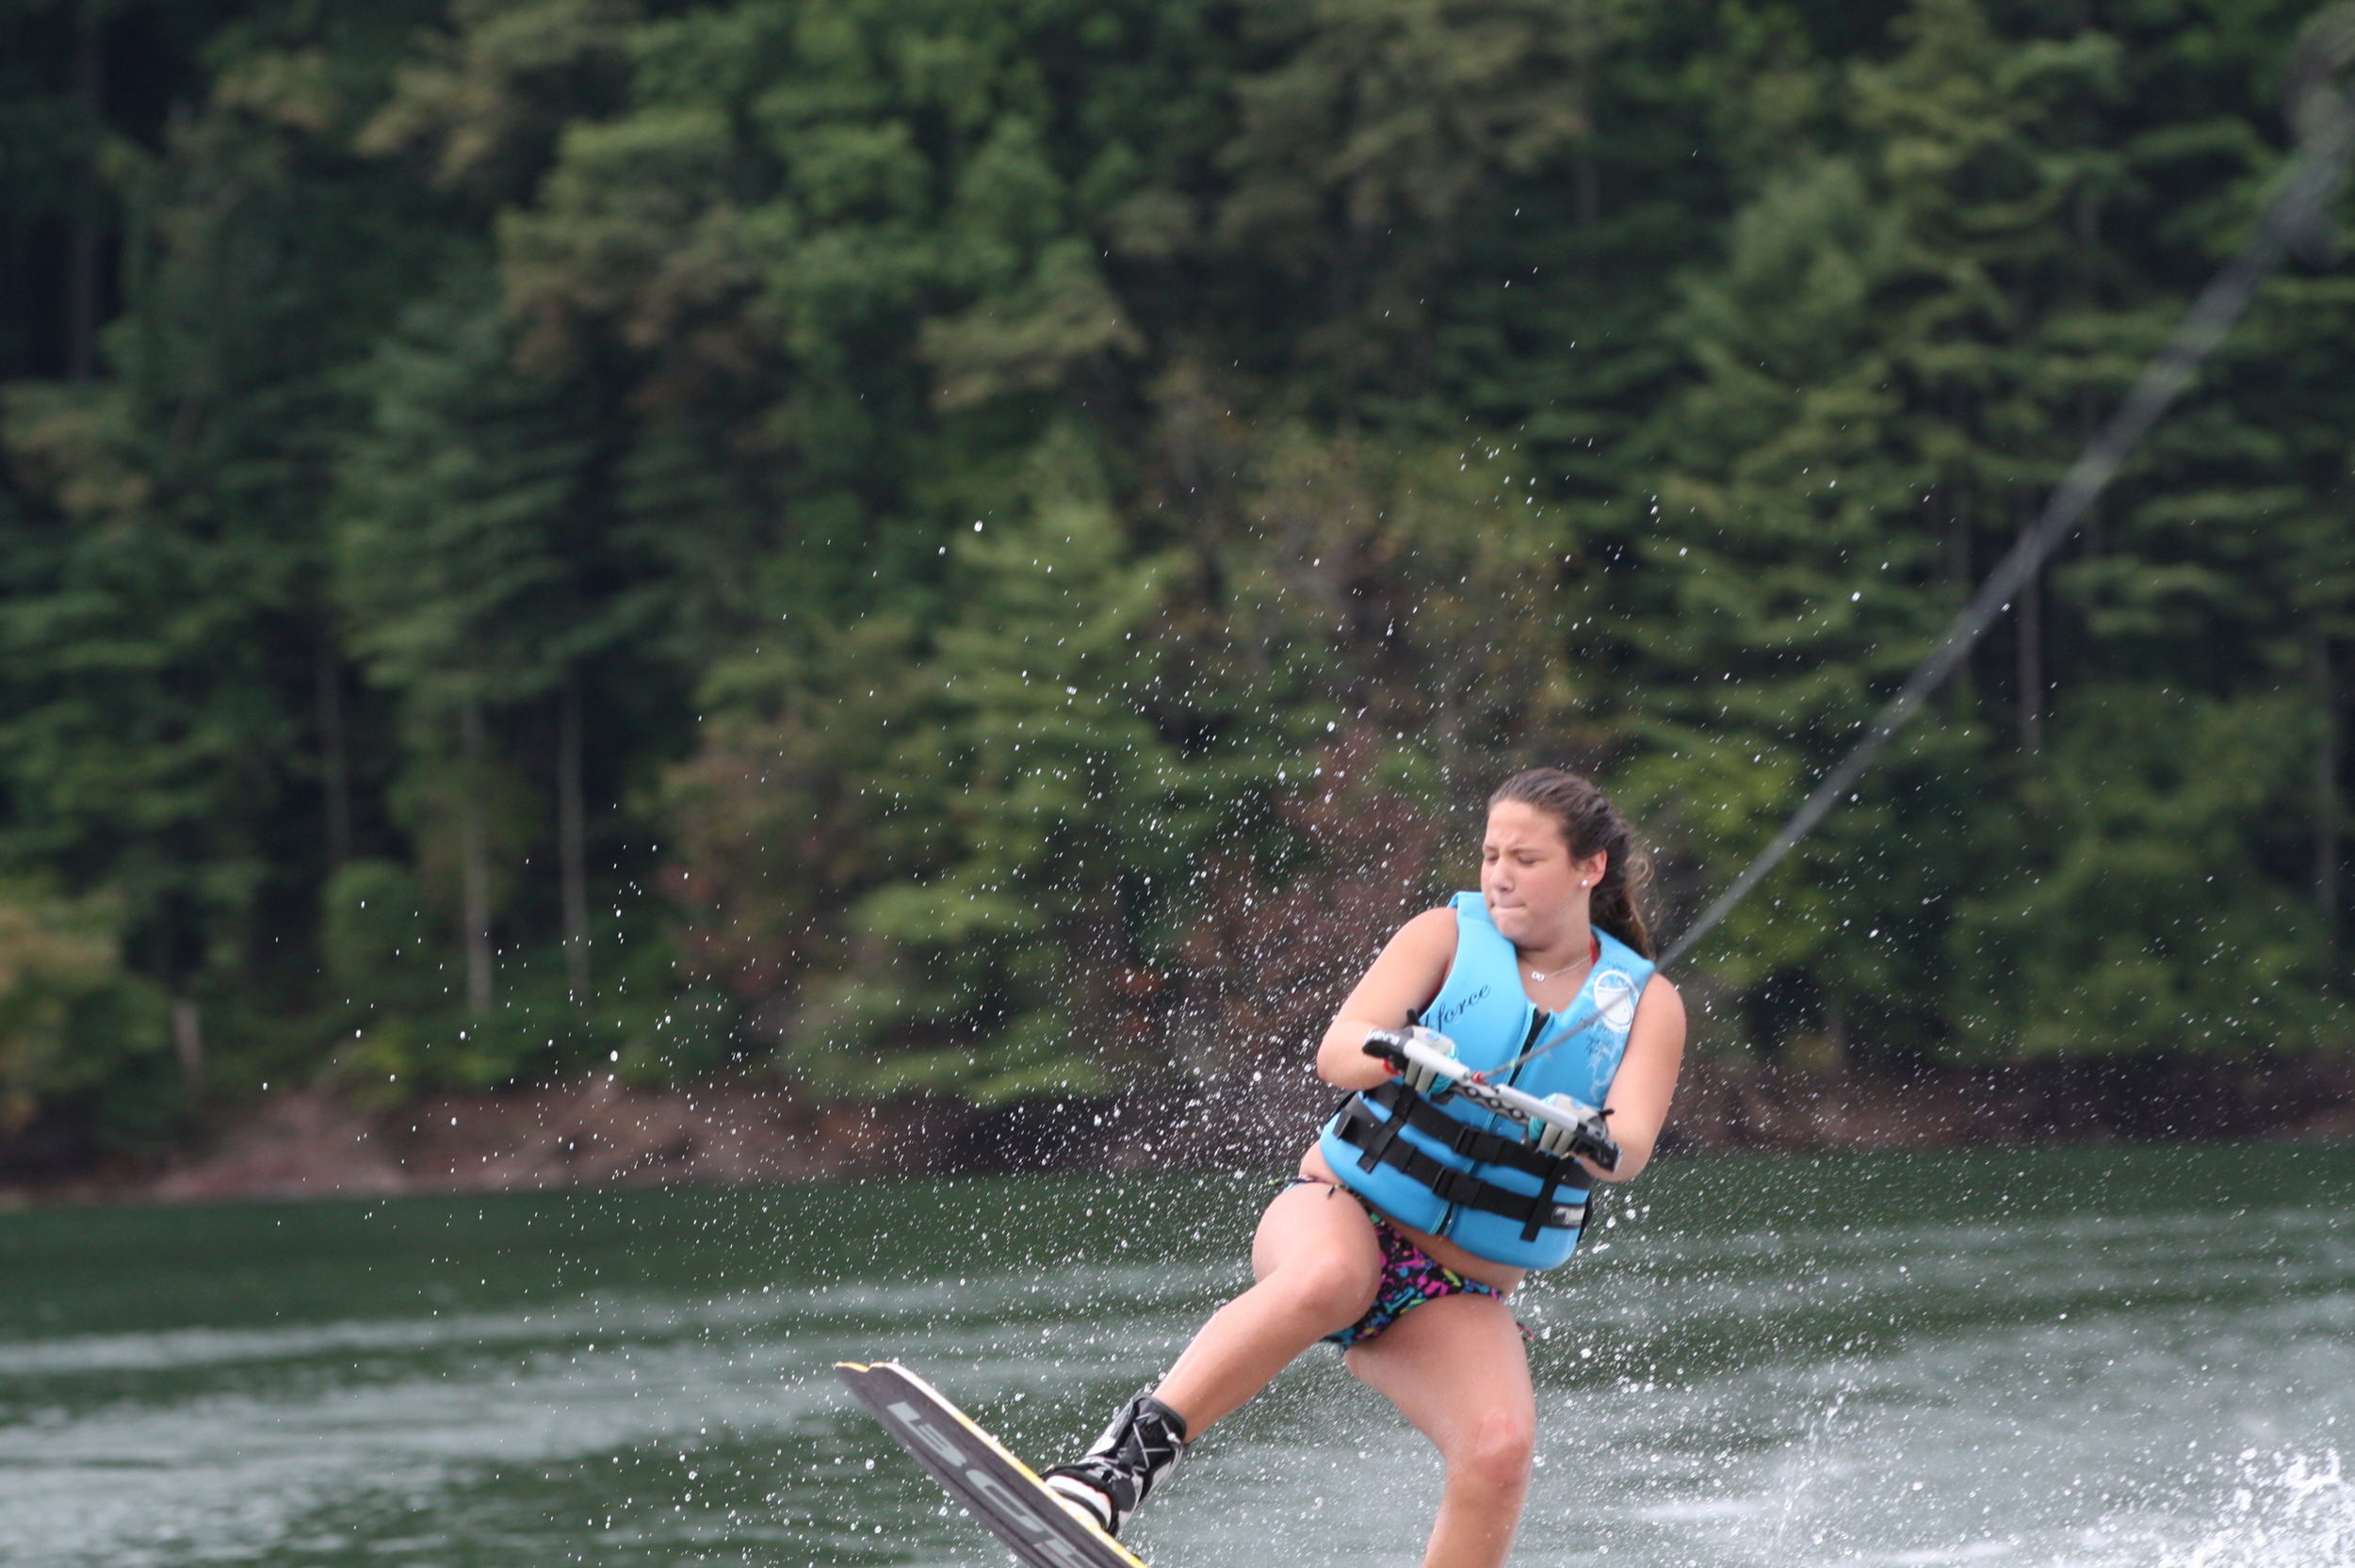 Carney bug wake boarding!